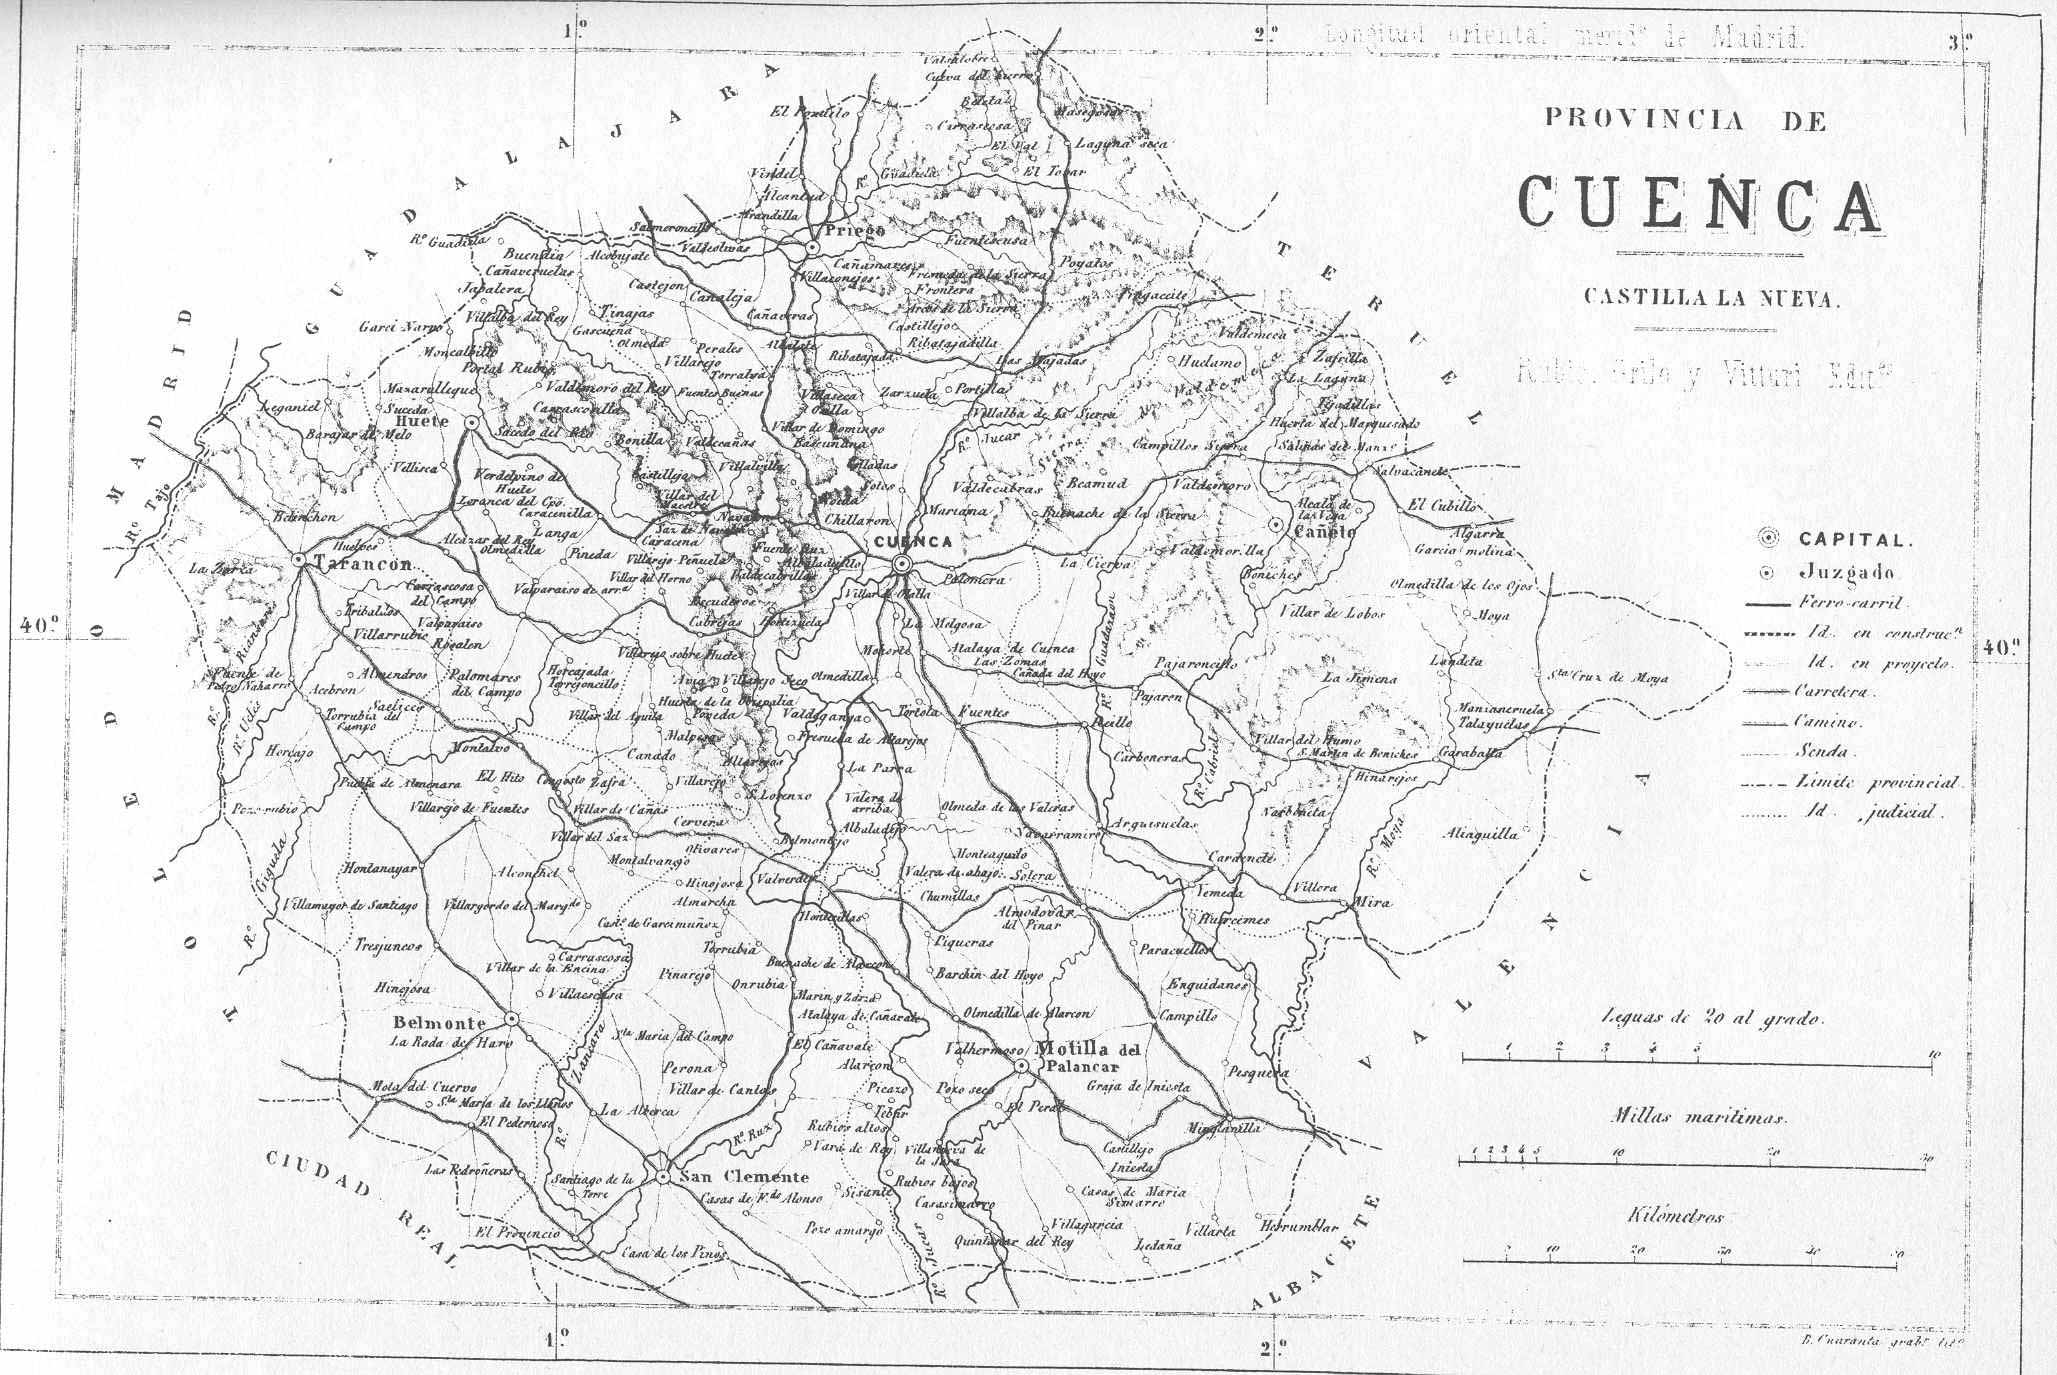 Map of the Province of Cuenca 1869